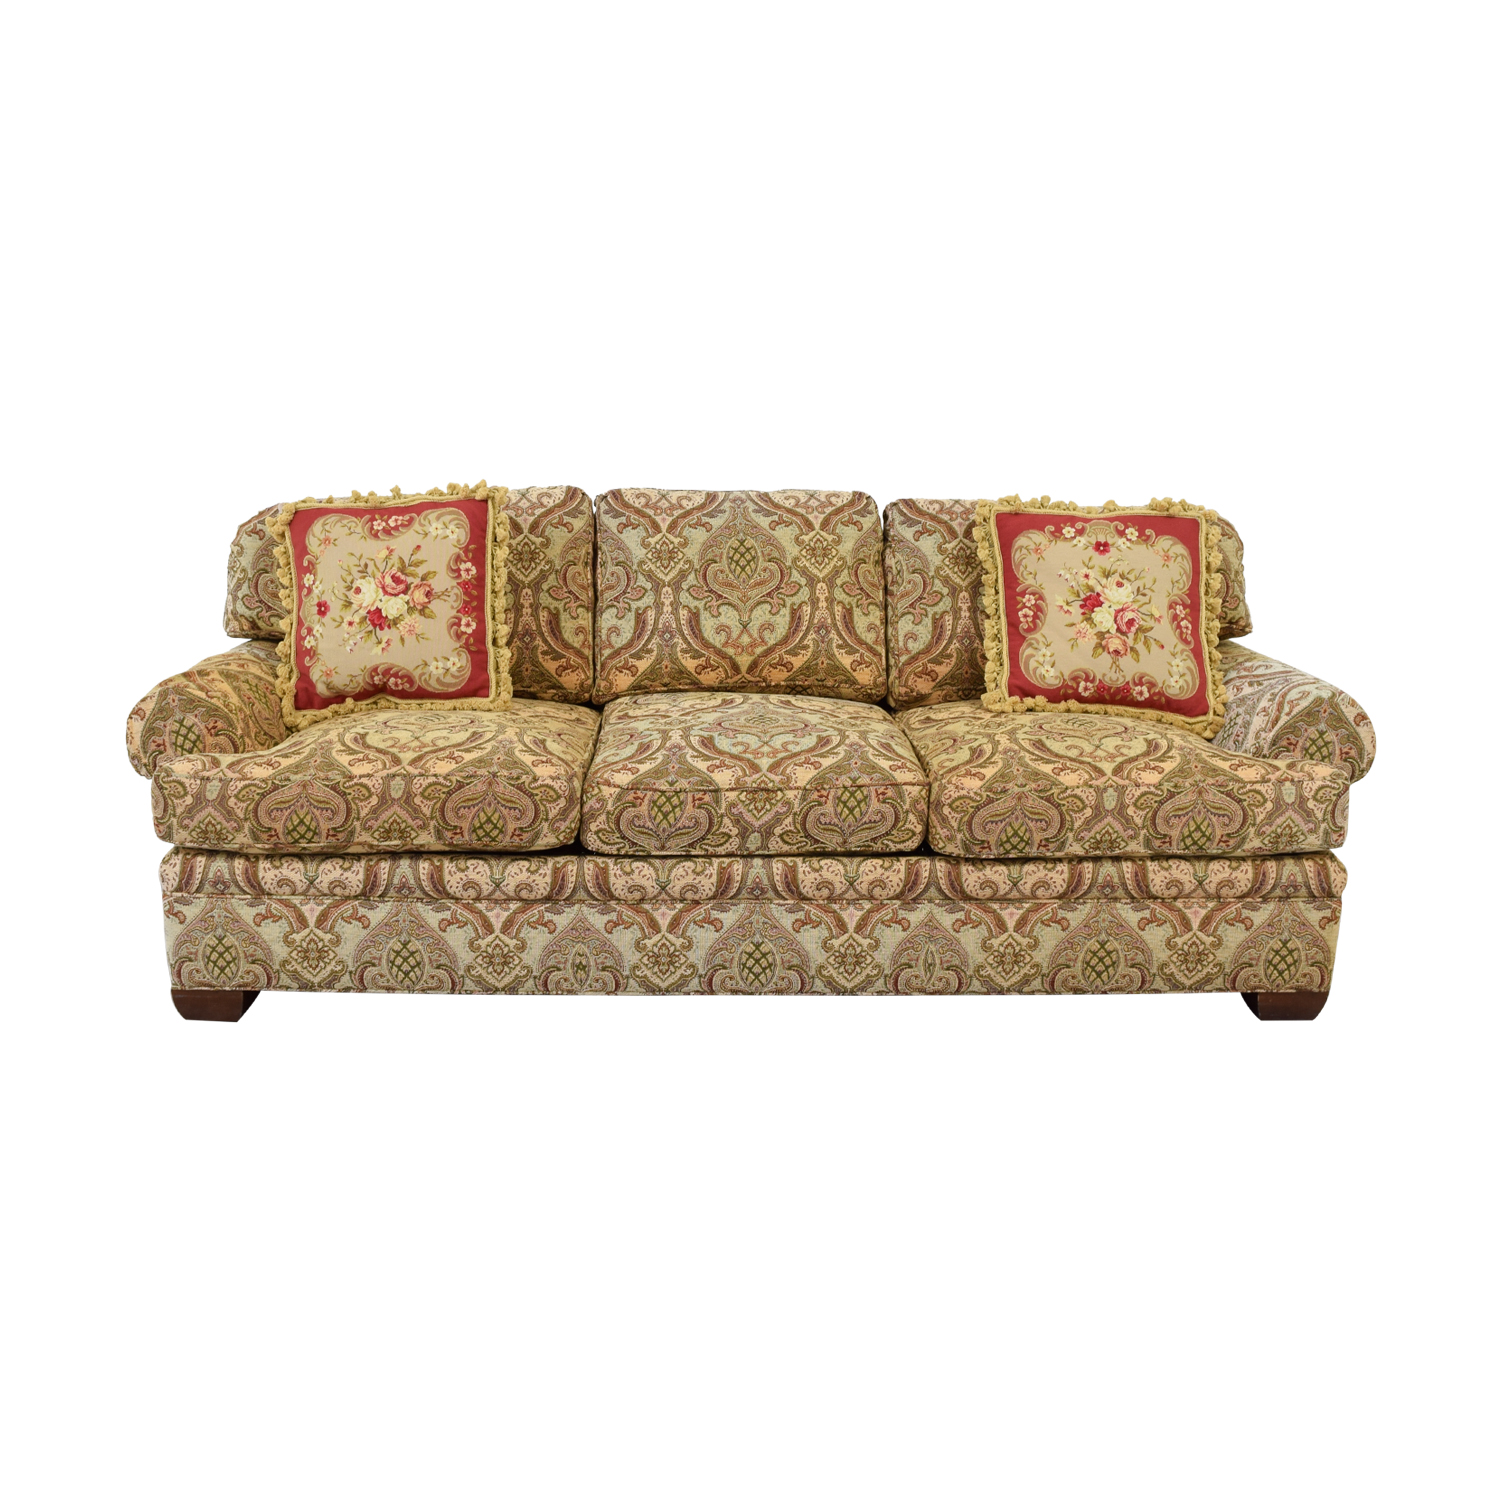 Exceptionnel Kravet Kravet Custom Chenille Paisley Three Cushion Sofa Nyc ...